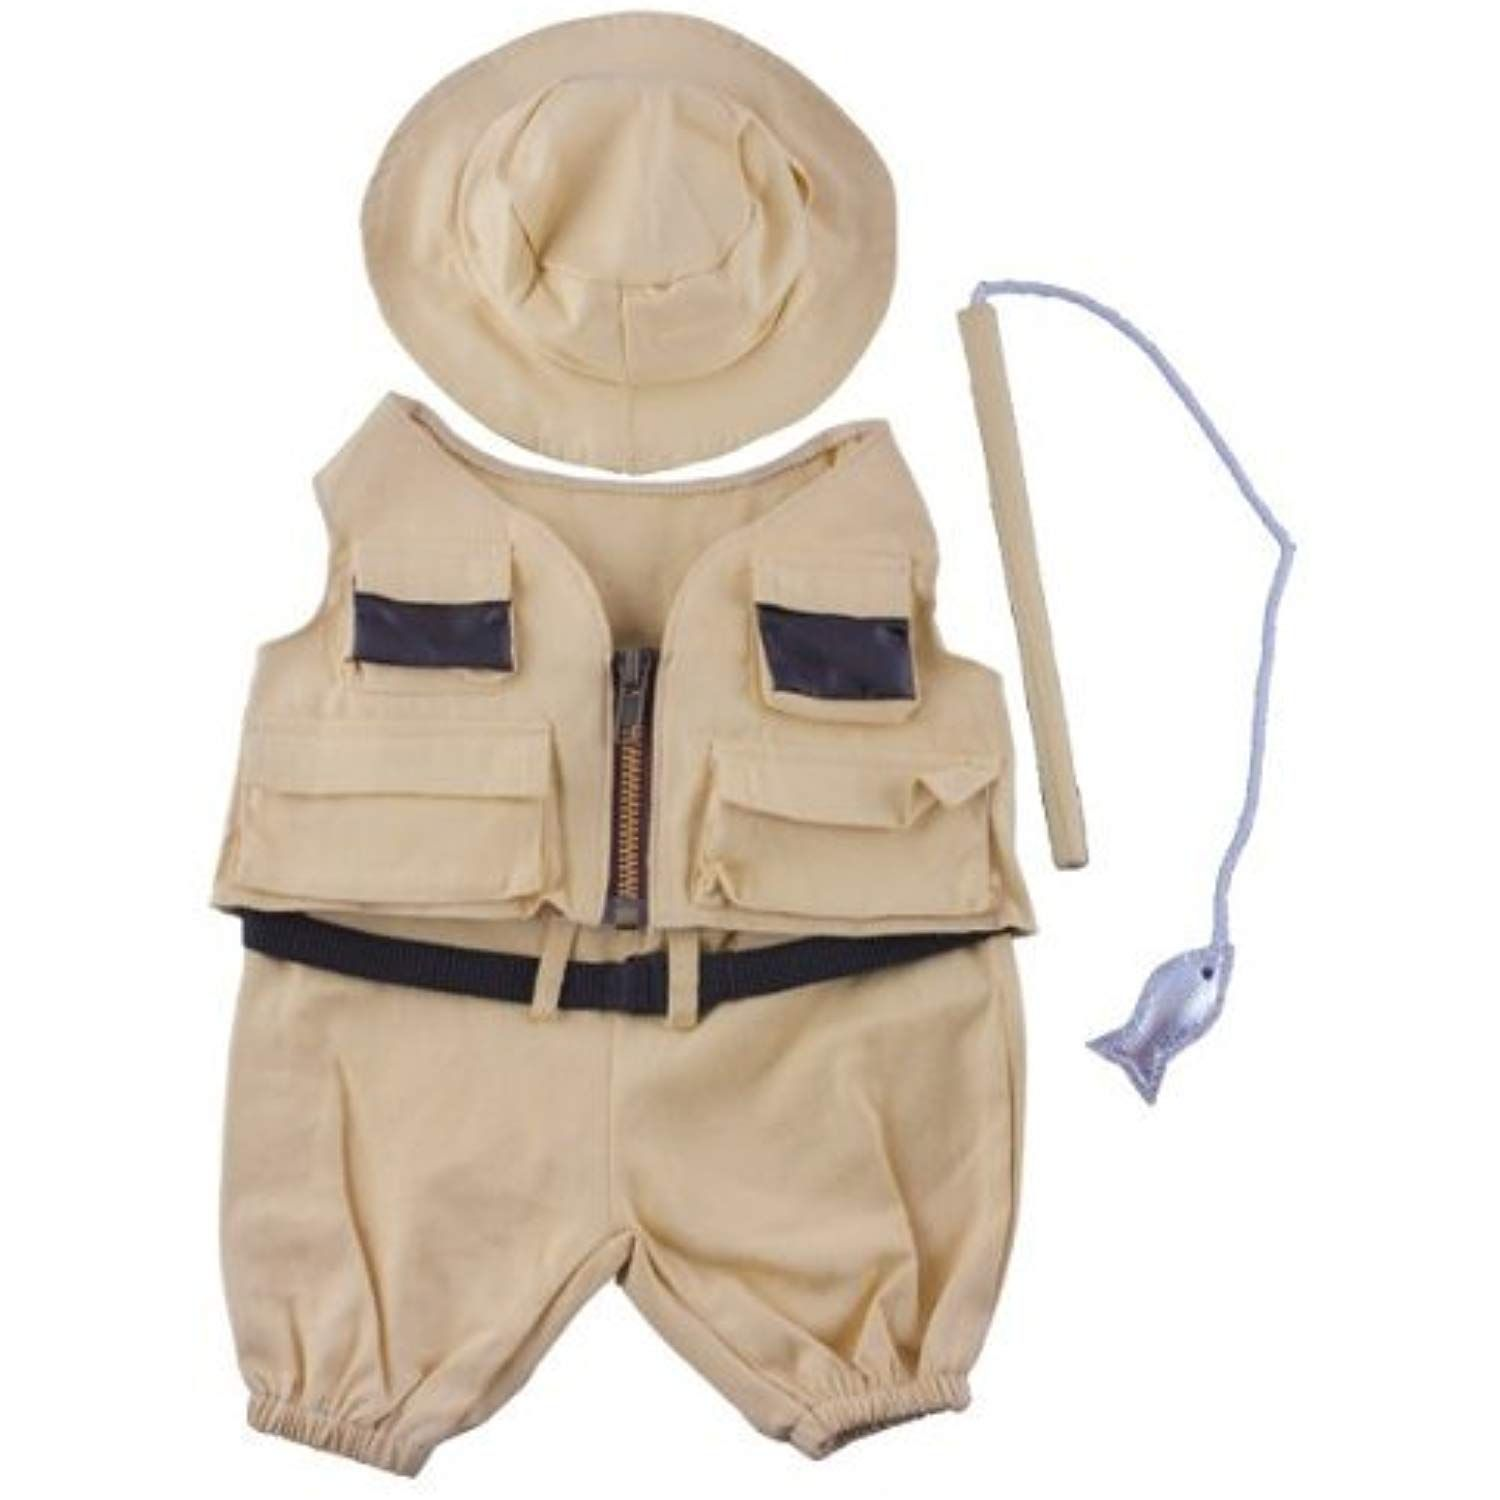 28c367baff6 Fisherman w Hat and Pole Outfit Teddy Bear Clothes Fit 14